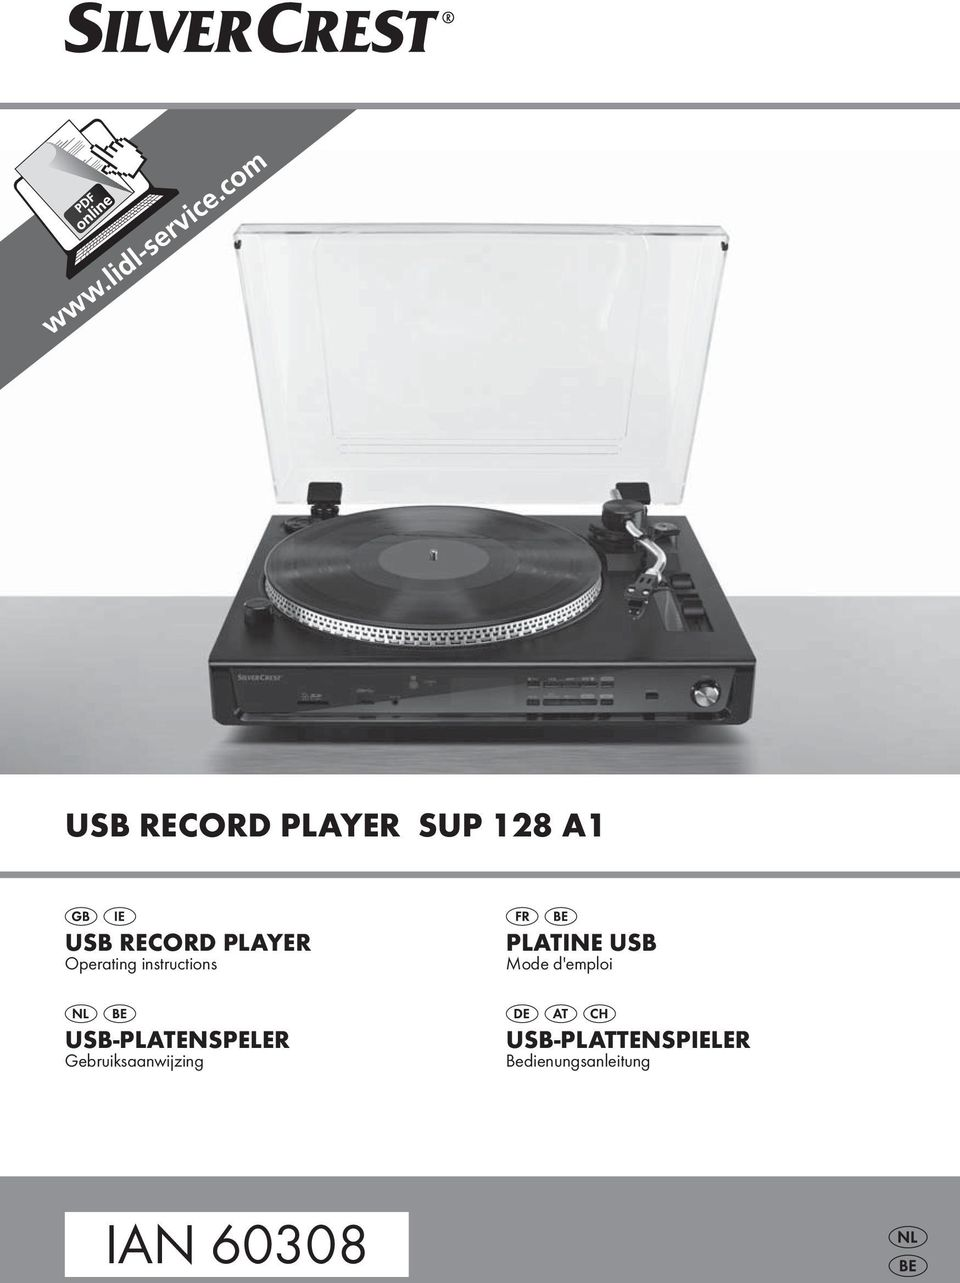 Ian Usb Record Player Sup 128 A1 Usb Record Player Platine